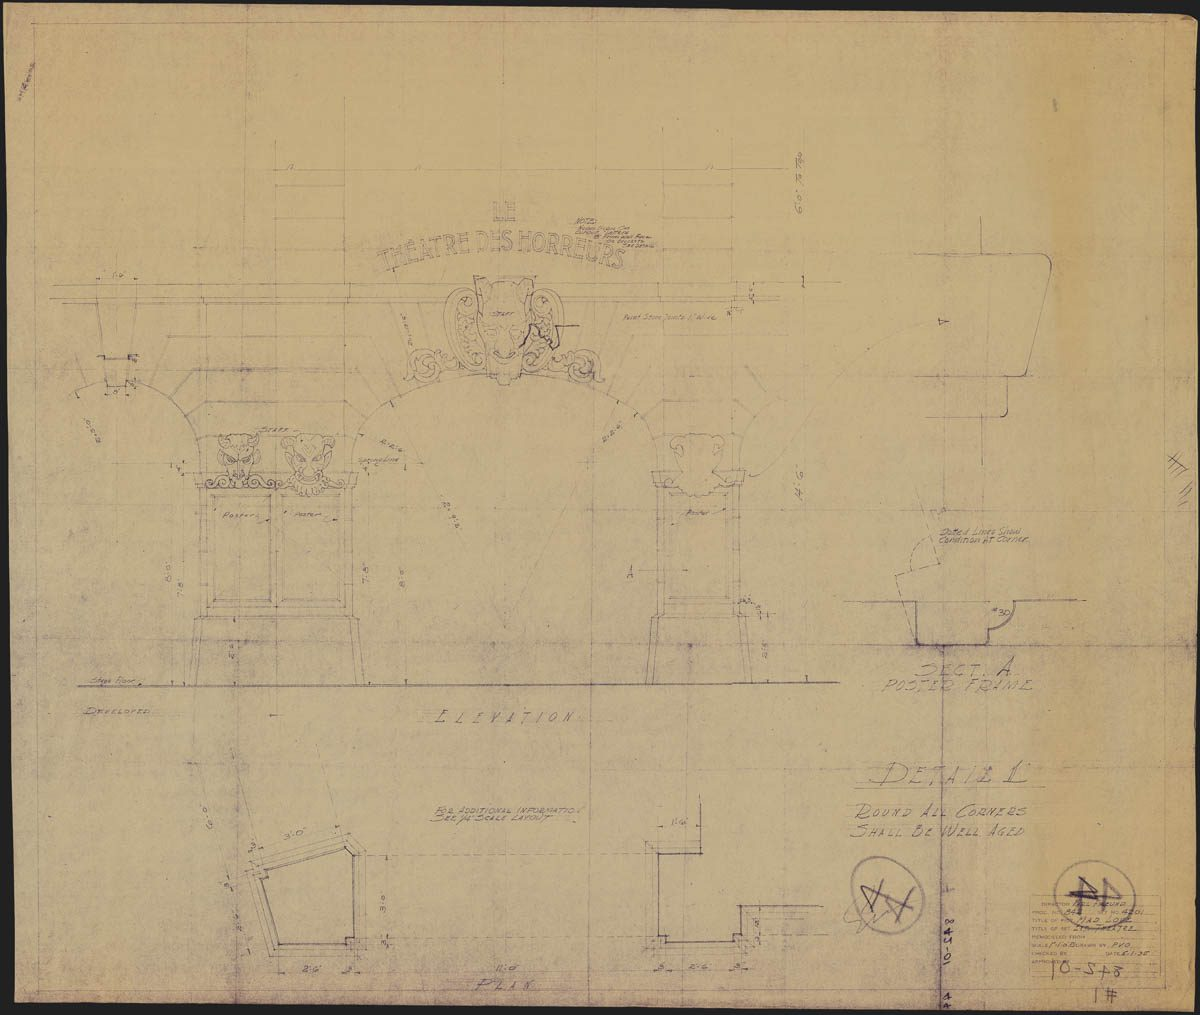 76-mad-love-us-blueprint-1935-01